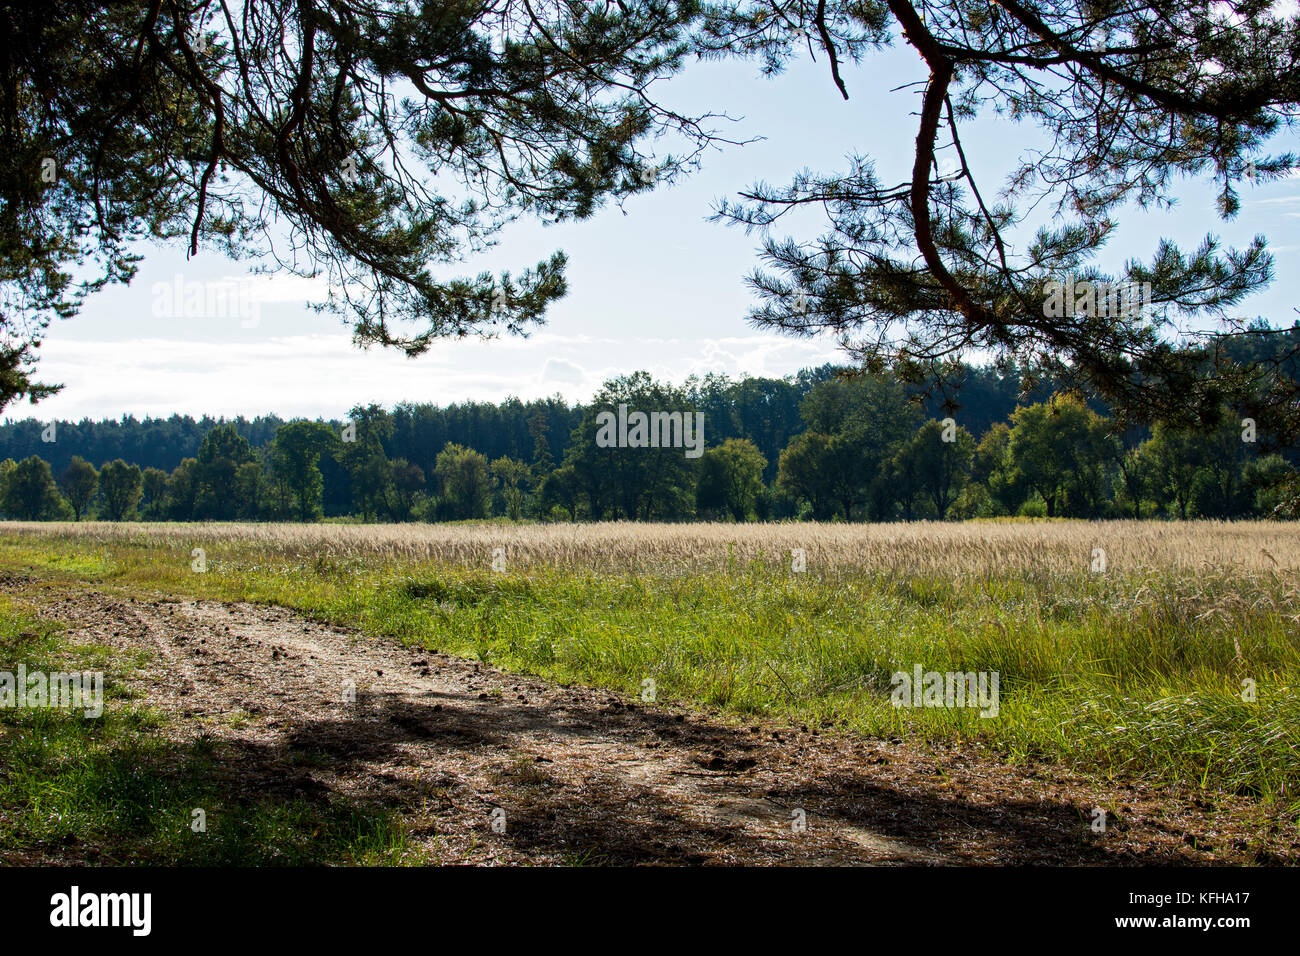 Coniferous forest and meadow under a blue sky with clouds in southern Moravia in the Czech Republic Stock Photo